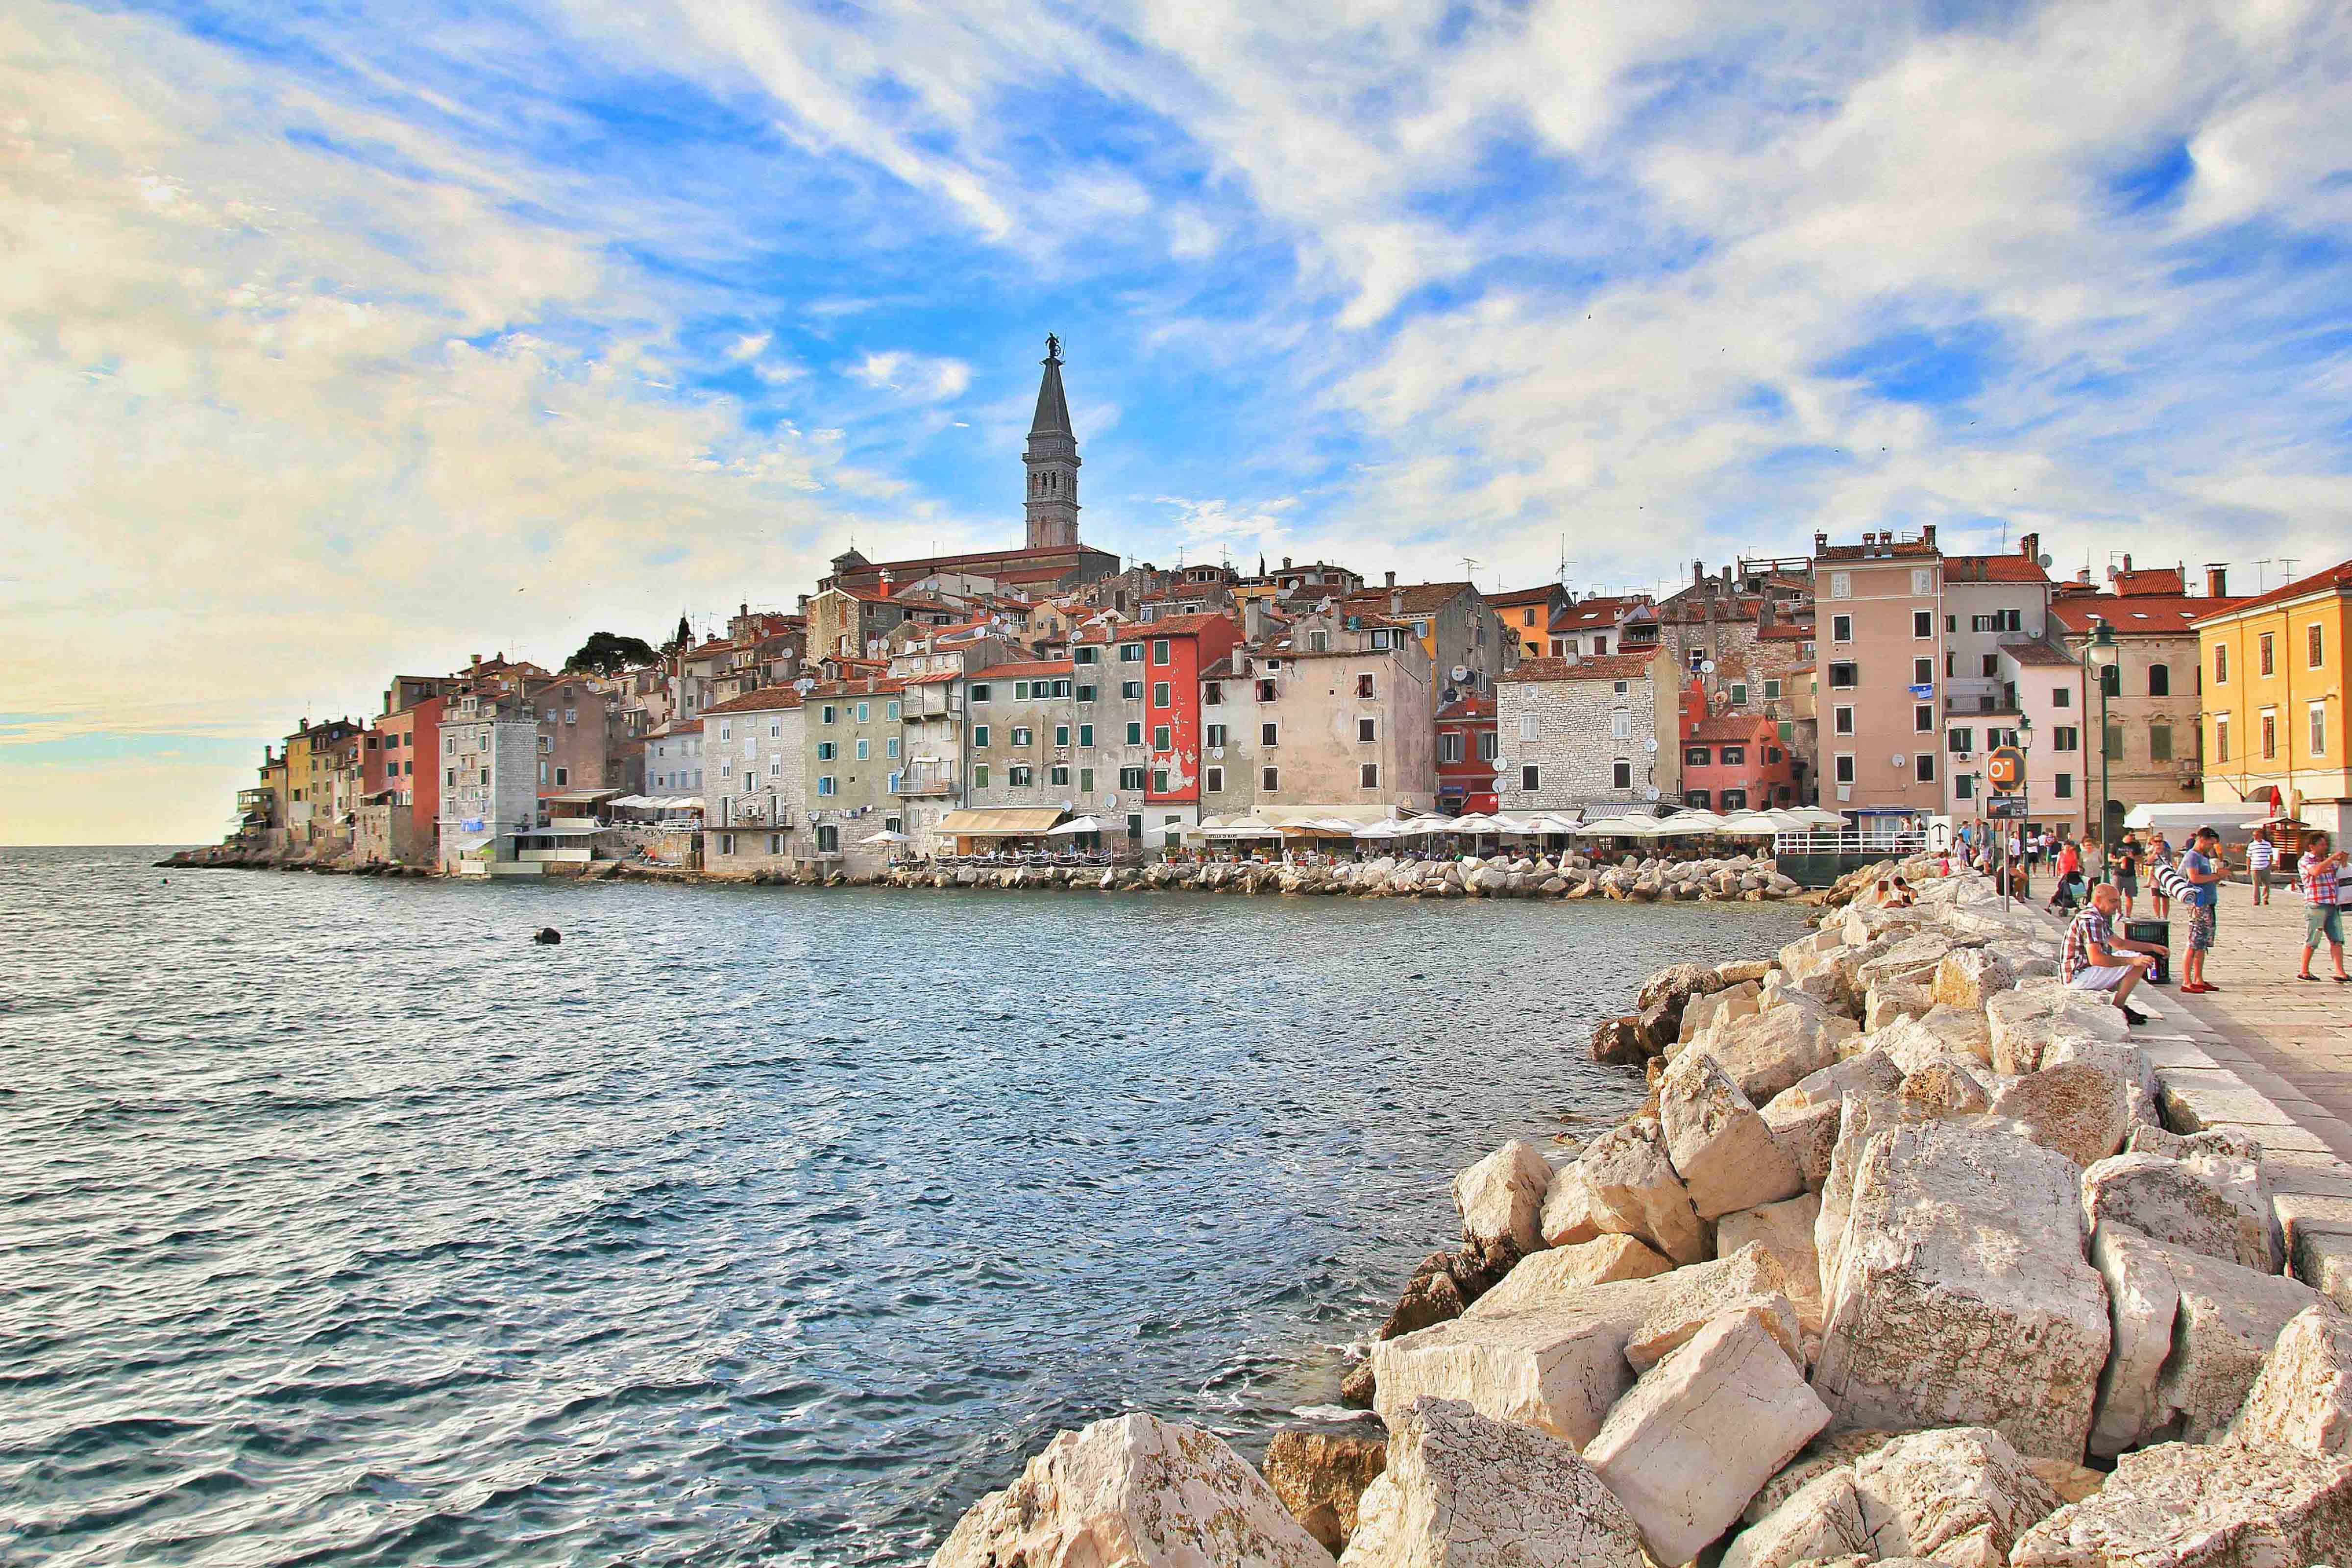 Banjole Croazia Top Things To Do In Istria Travel Highlights Placesofjuma